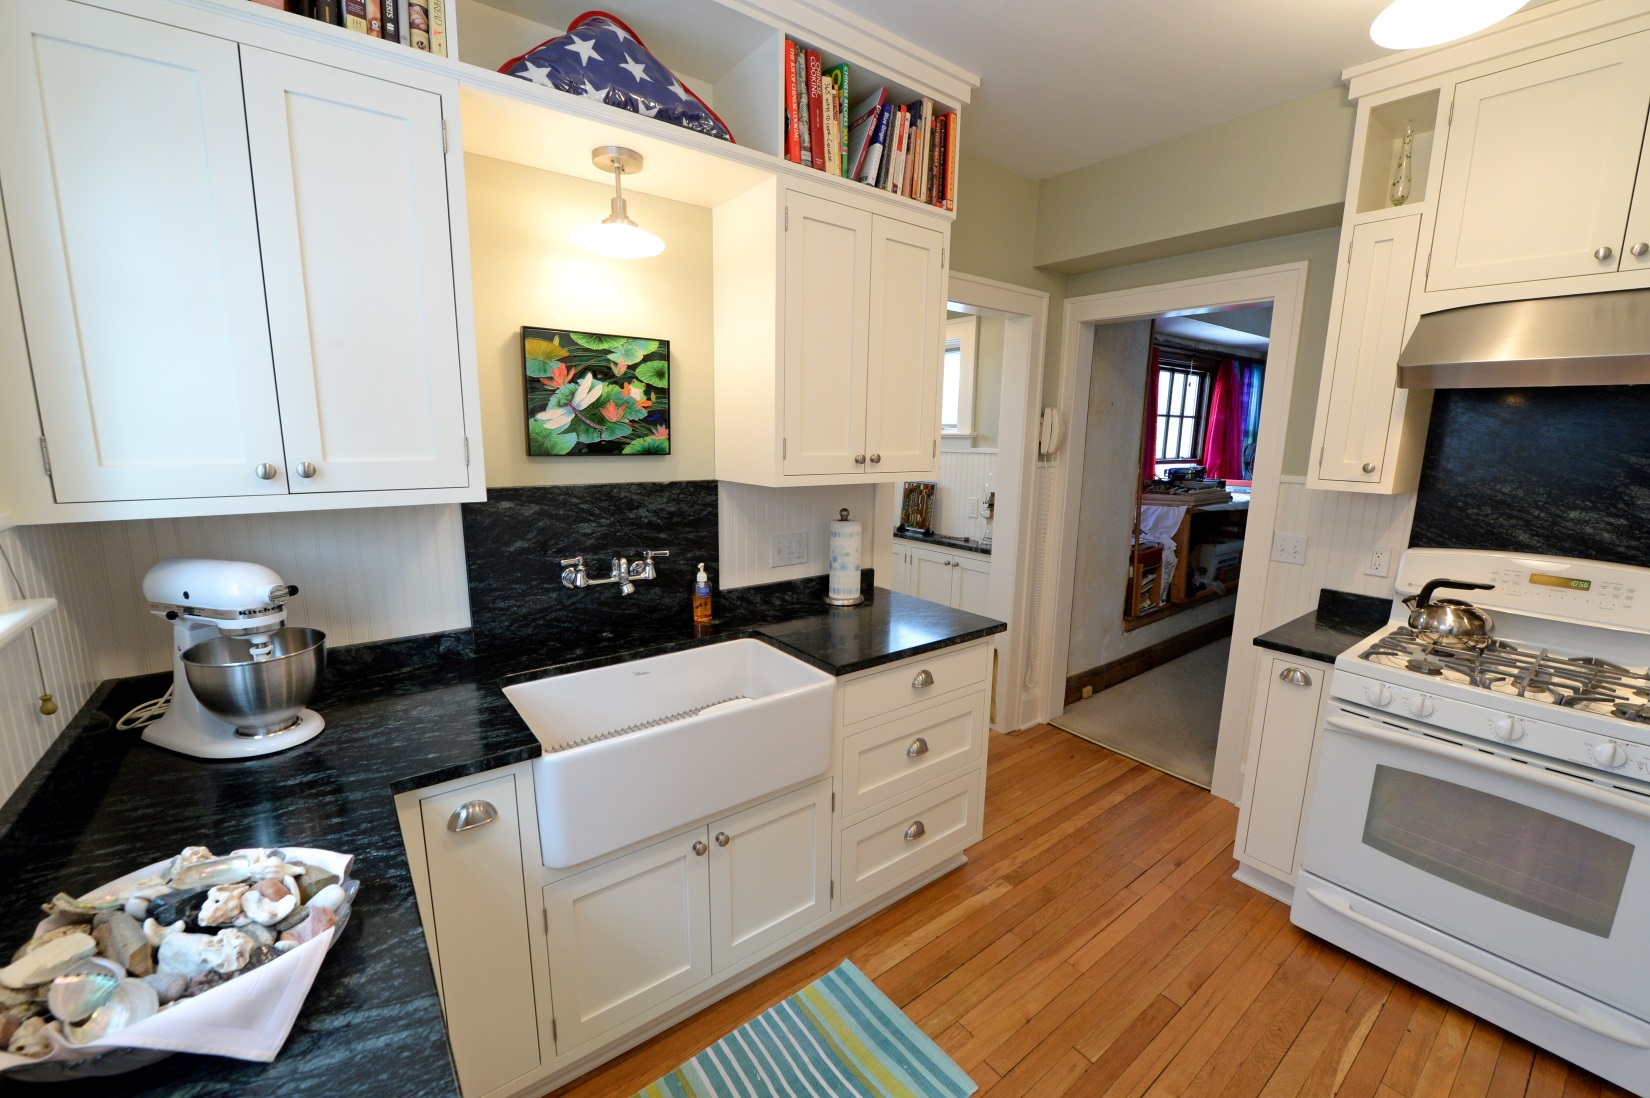 2014 Residential Kitchen